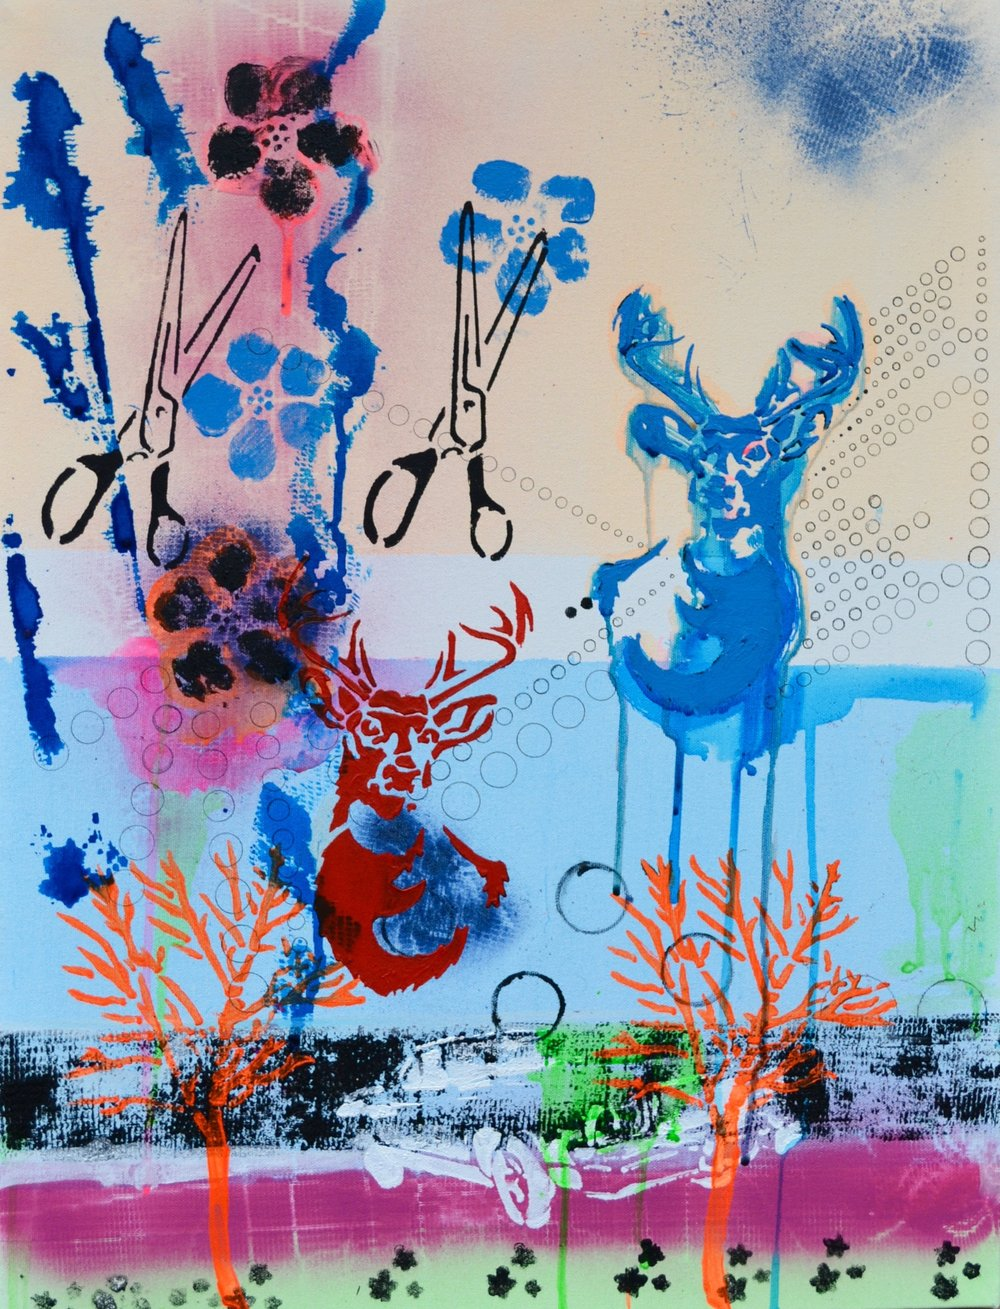 Tag The Stag Mix Media on Canvas | 46 x 60 cm £750